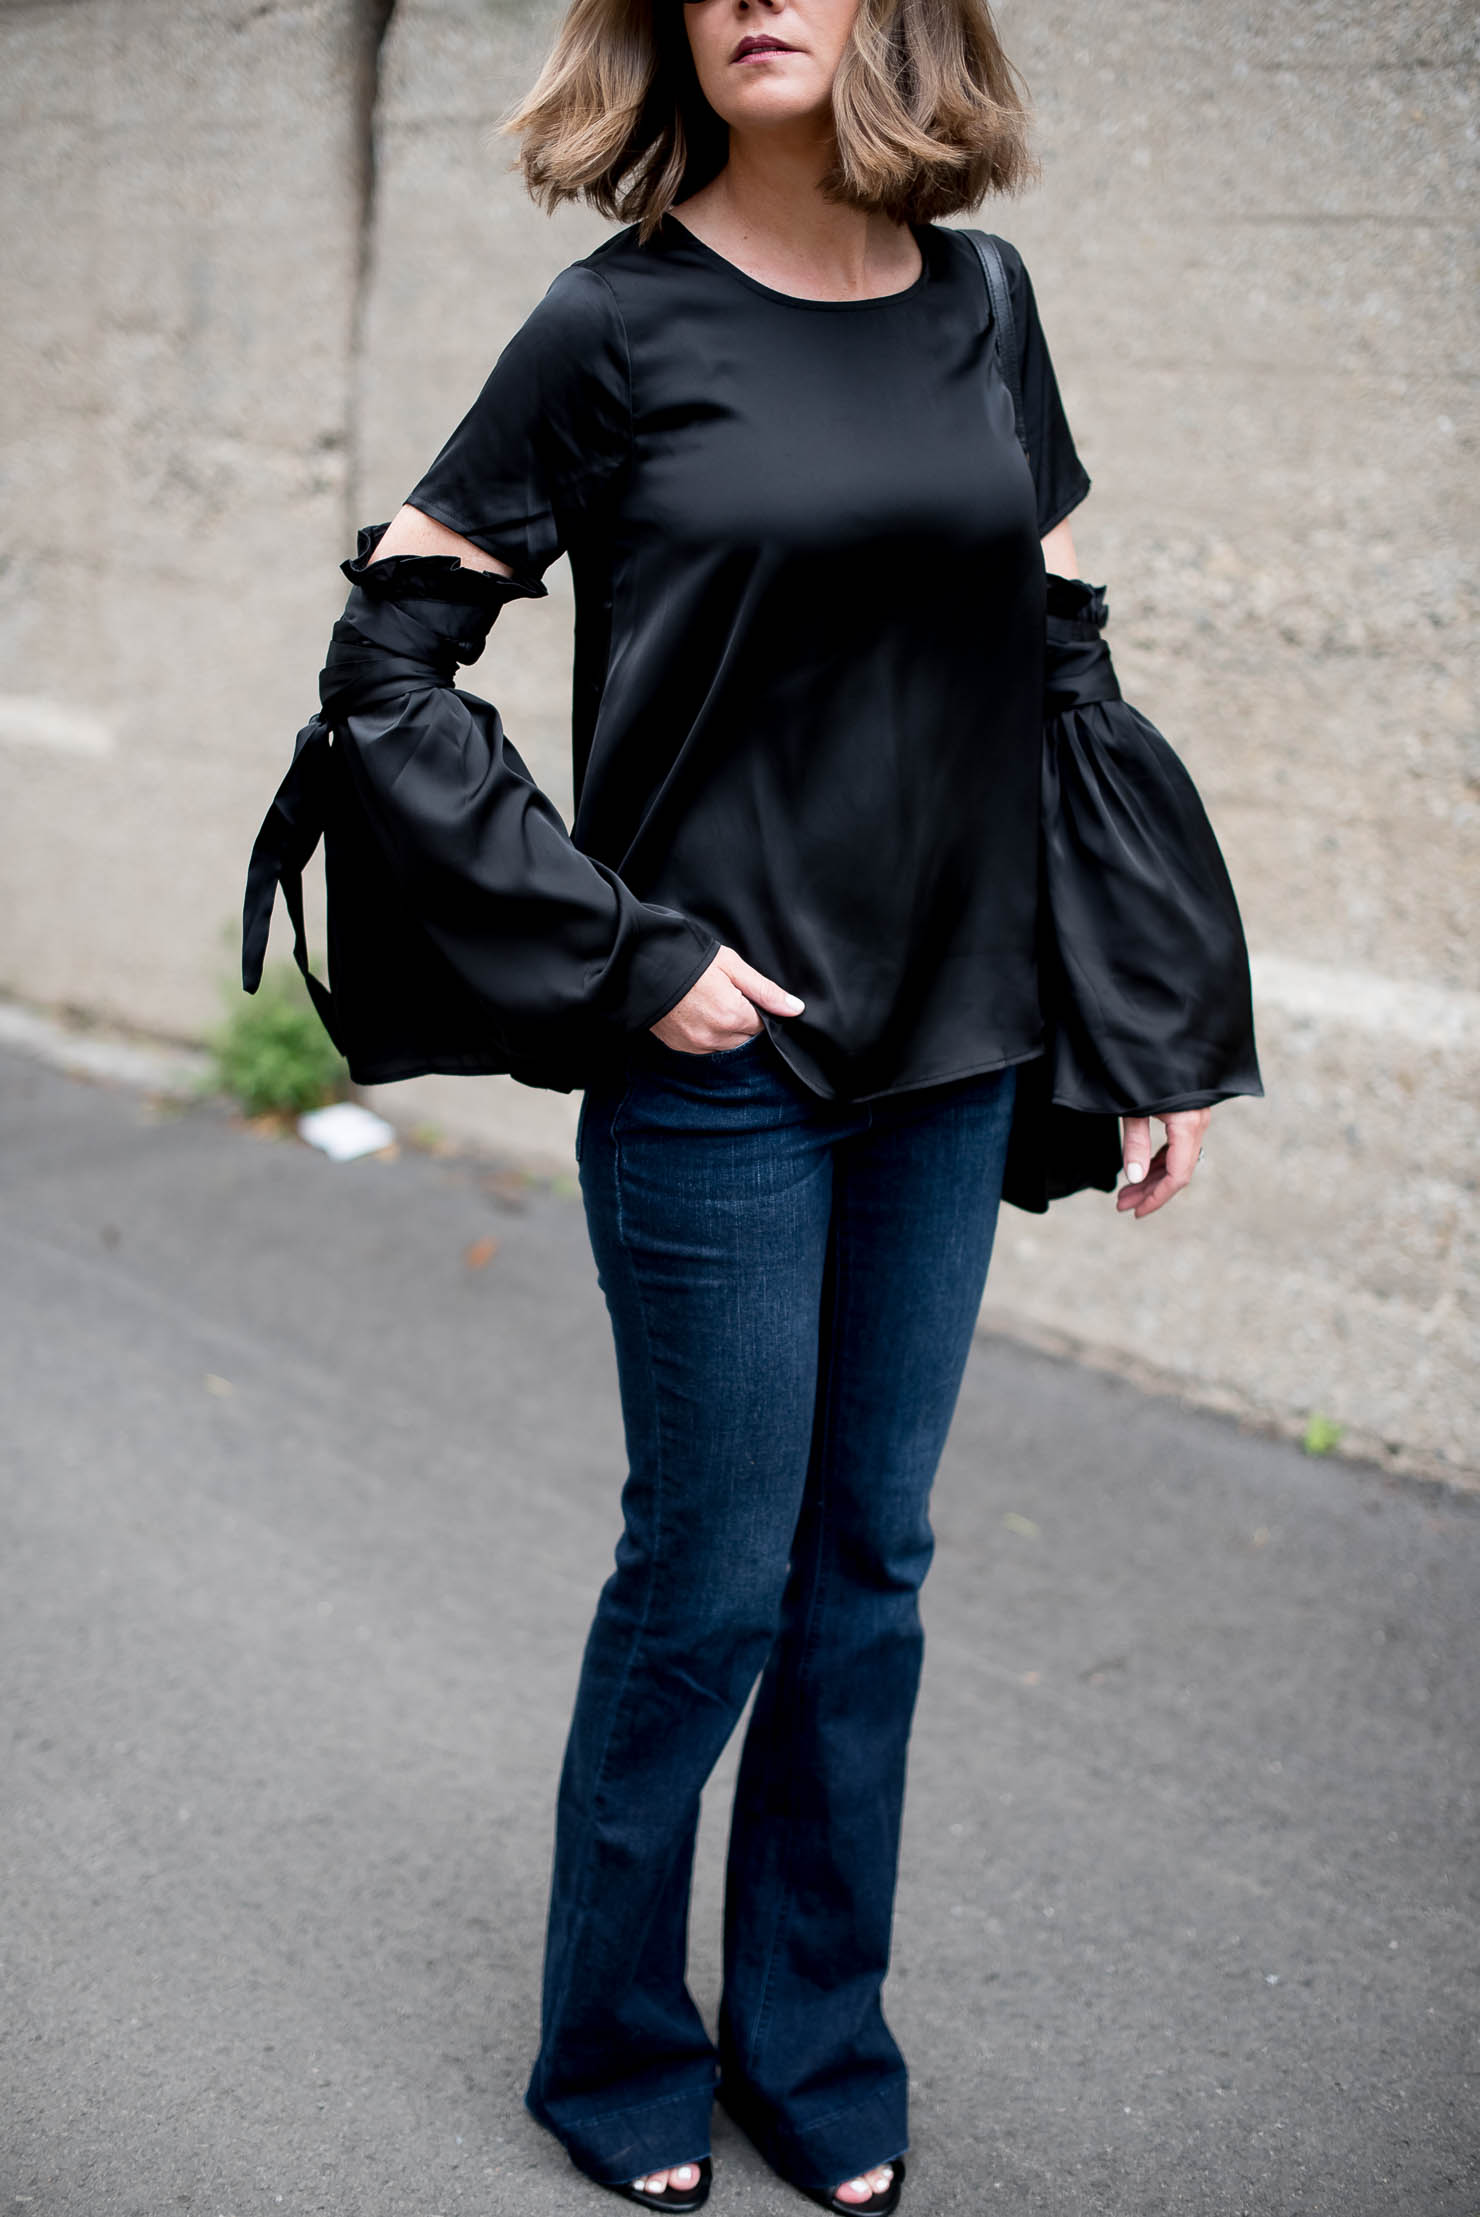 b4398f72fcc1e shein-blck-satin-bell-sleeve-blouse-with-ribbobs-dark-wash-flared-jeans-fall -trends-2016-monochromatic-fashion-look-for-less